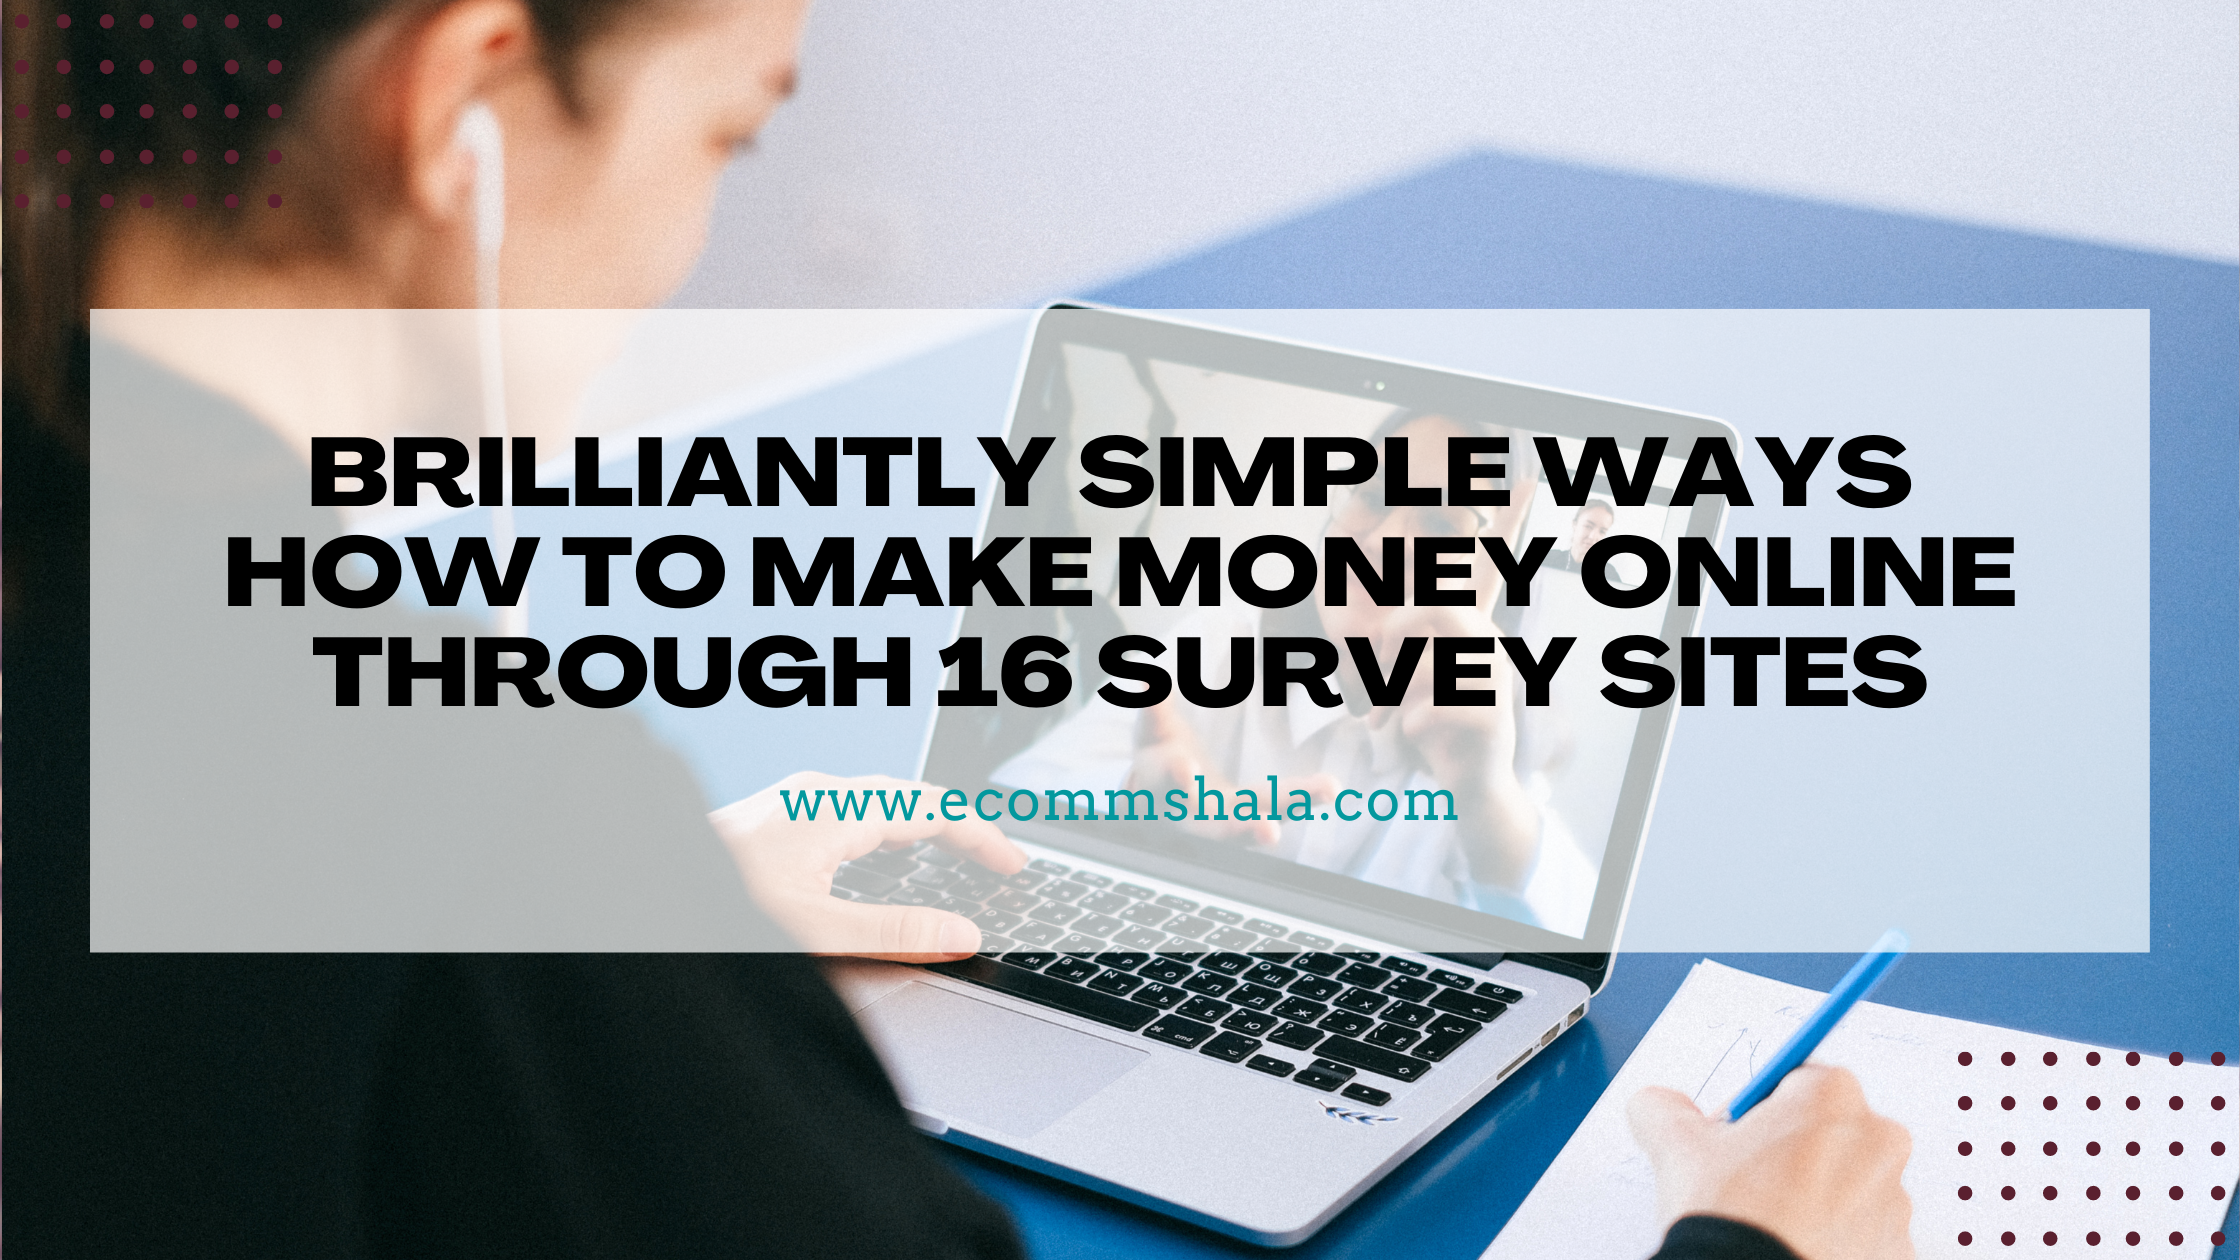 How to Make Money Online Through 16 Survey Sites